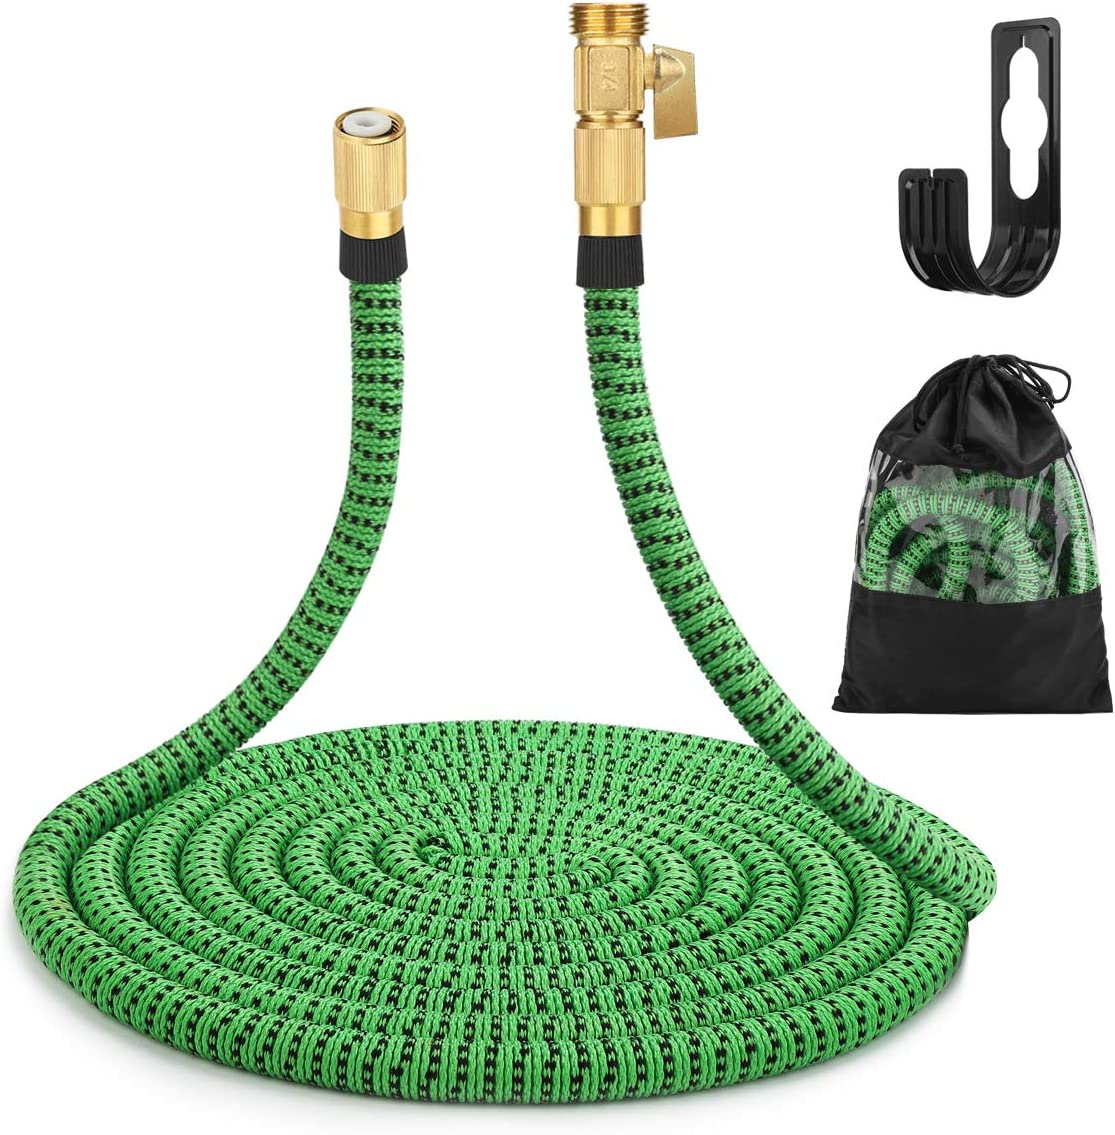 "Gobetter Garden Hose, 100 ft Expandable Water Hose with 3/4"" Standard Solid Brass Connectors, Pocket Hose Lightweight/Flexible/Leak Proof/Durable"